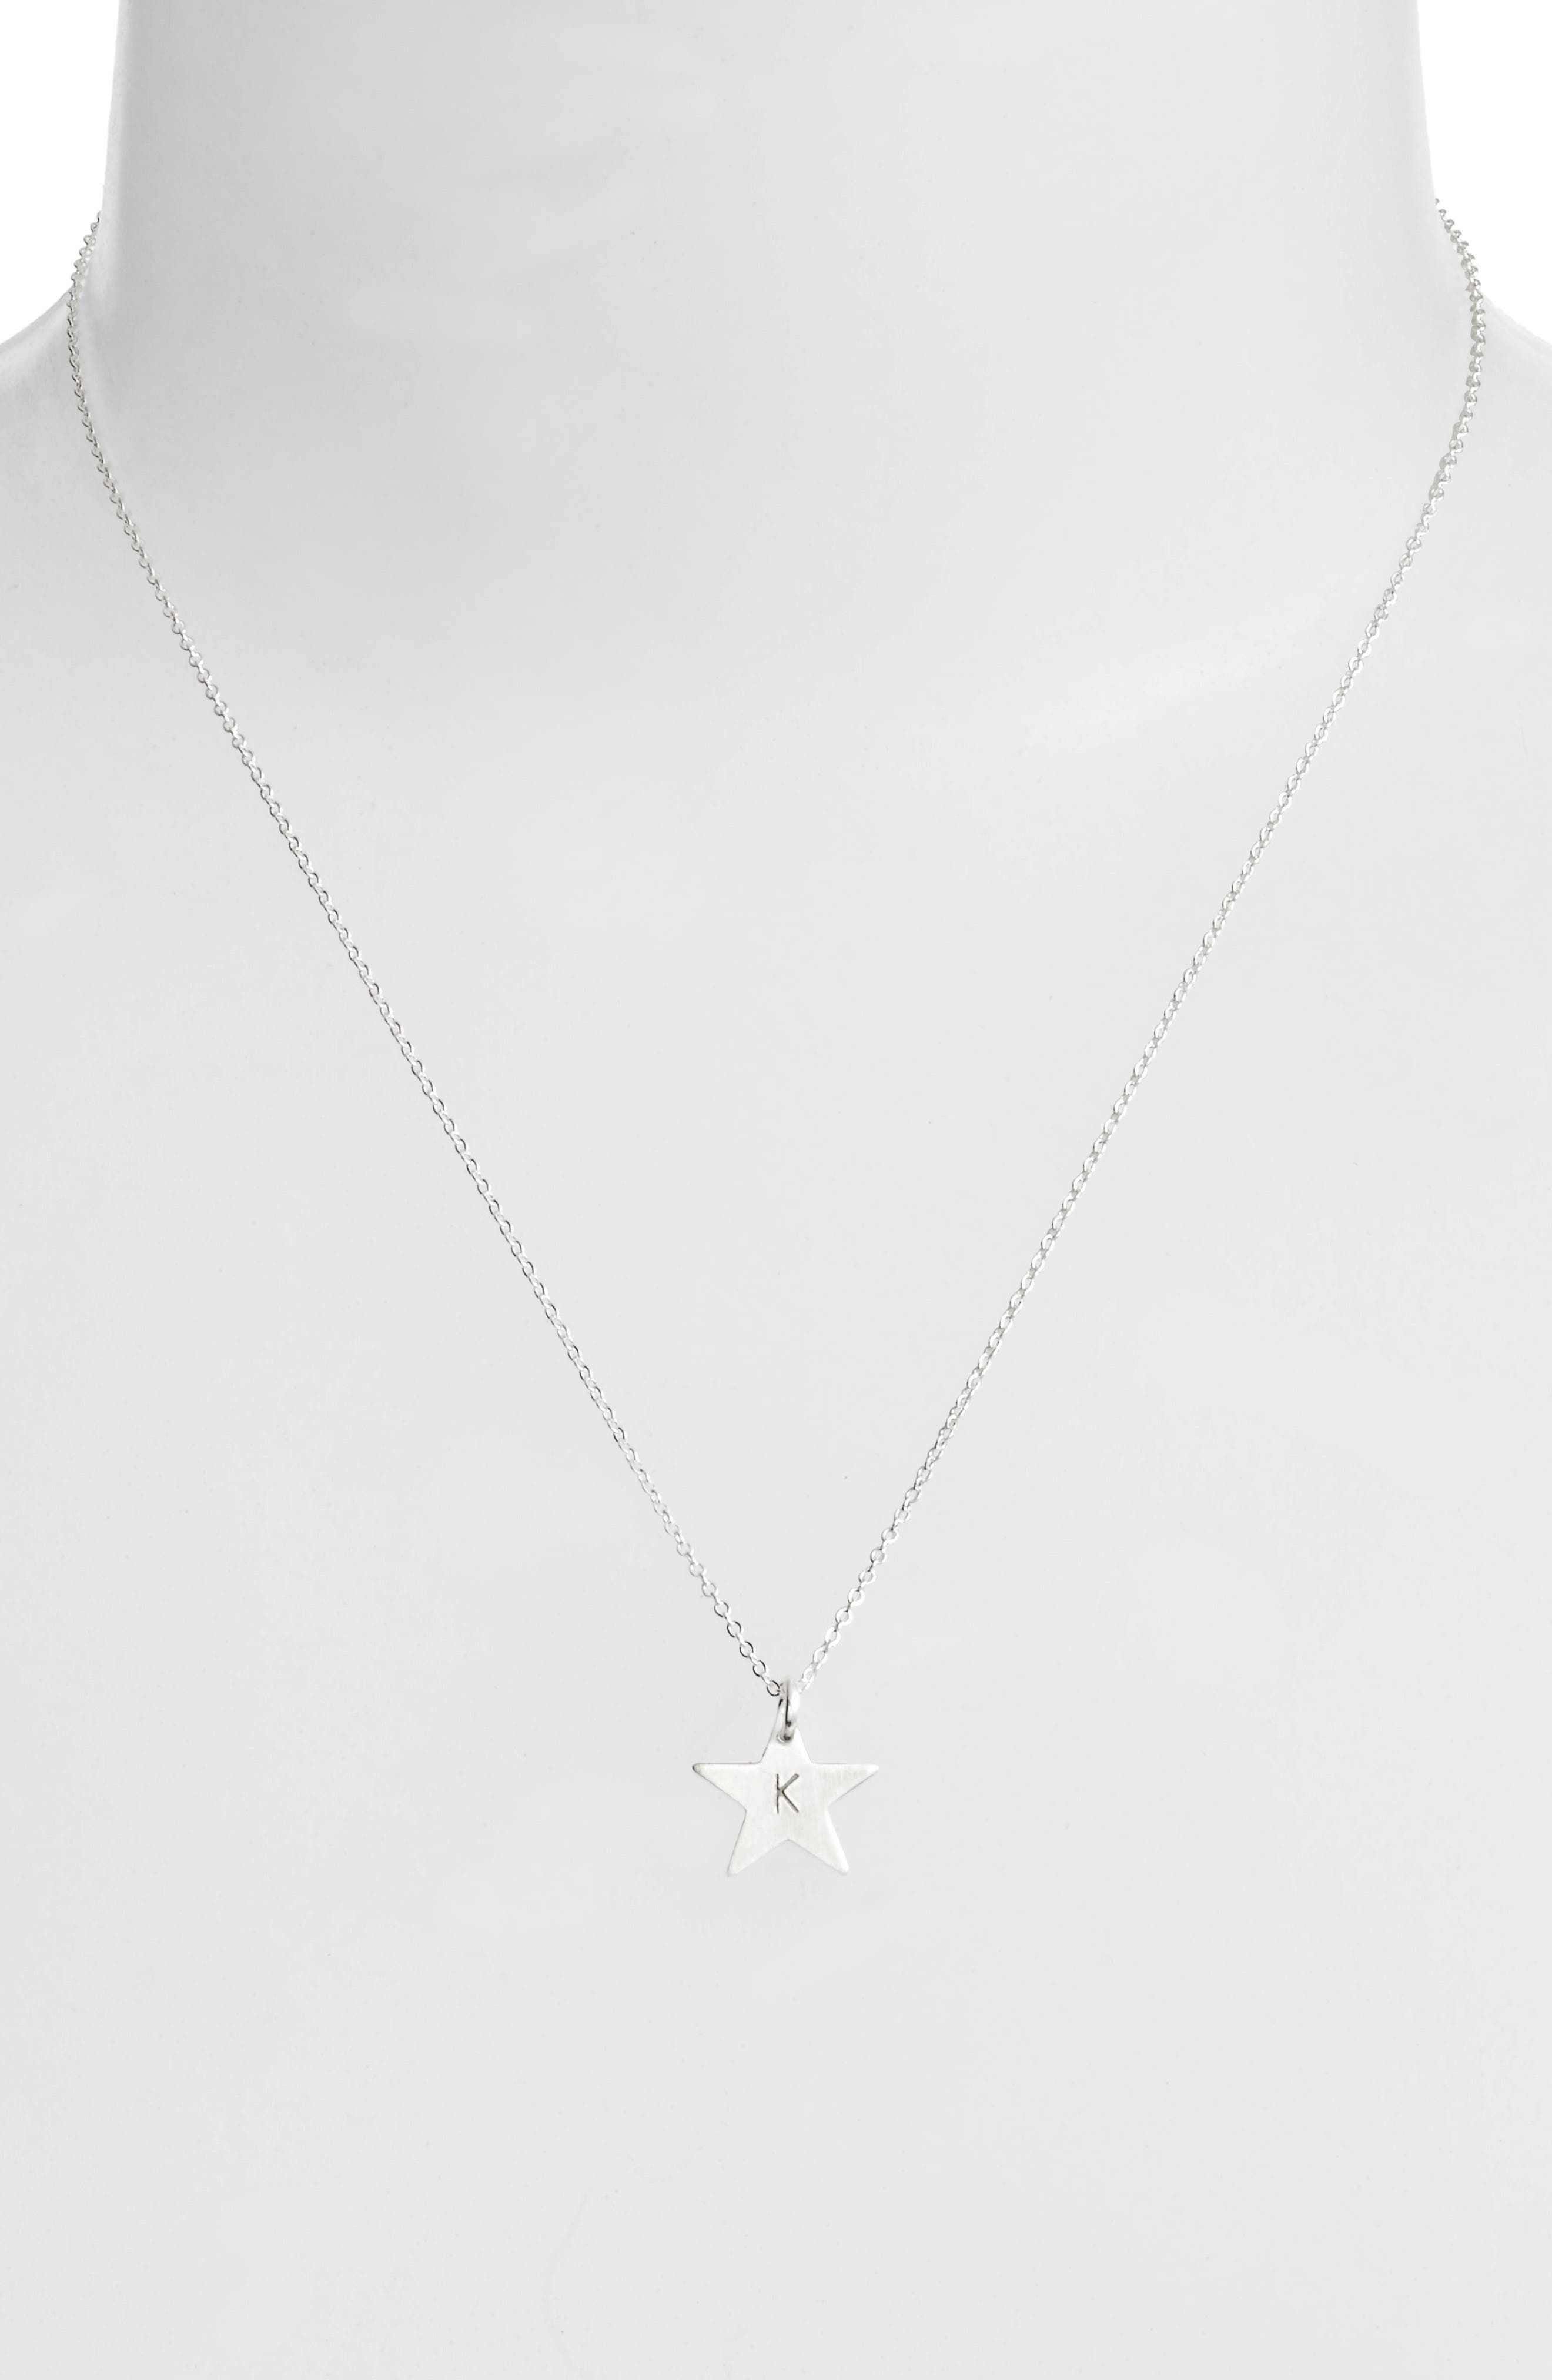 Sterling Silver Initial Mini Star Pendant Necklace,                             Alternate thumbnail 2, color,                             Silver/ K